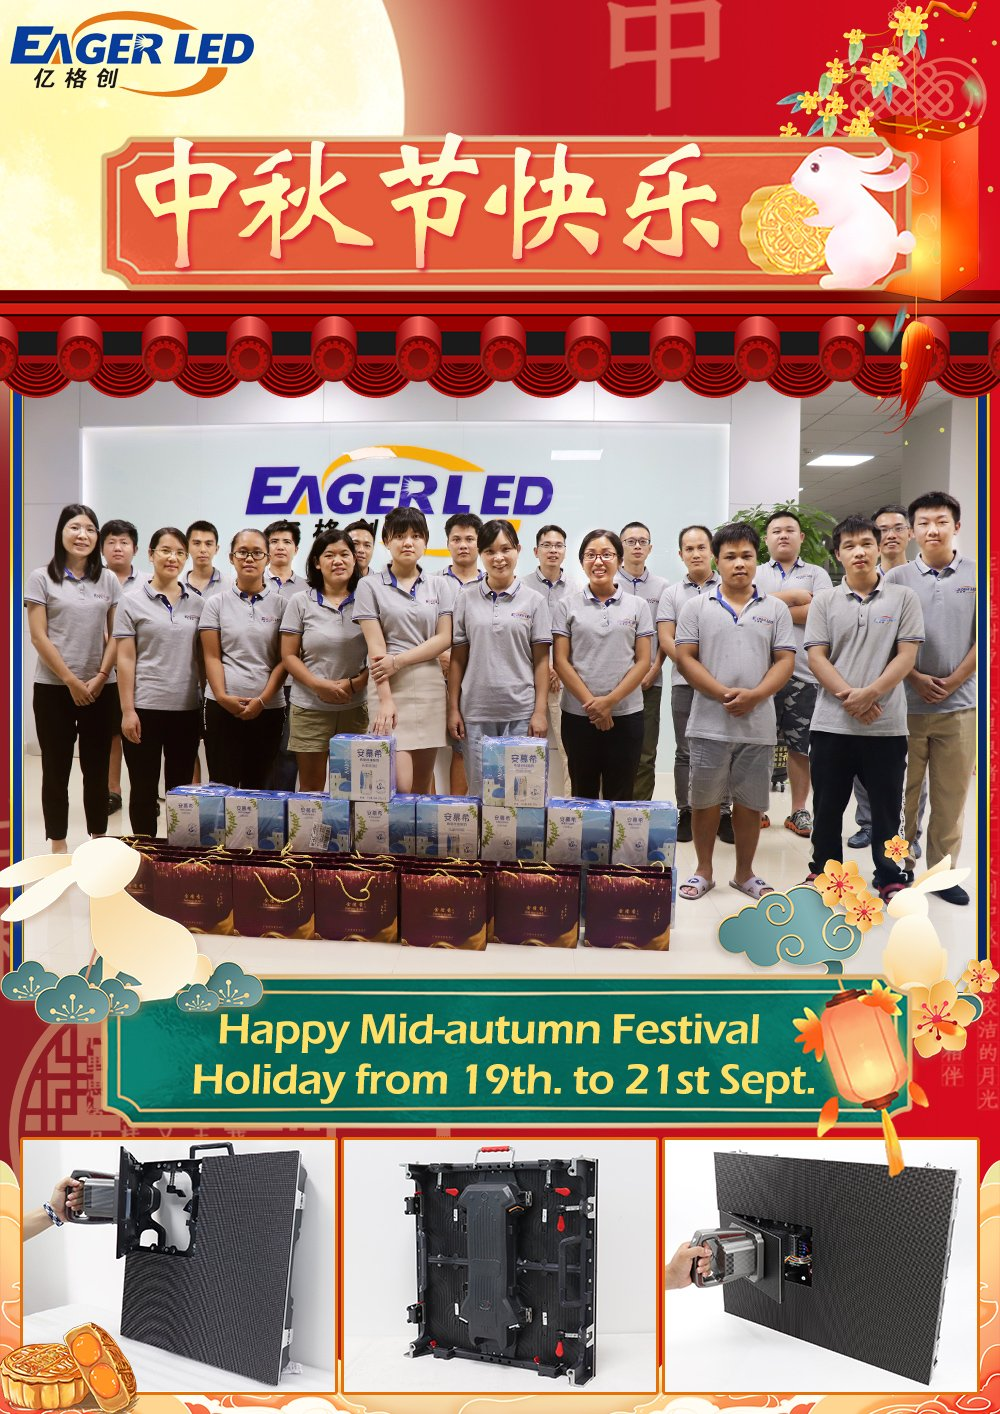 EagerLED 2021 Mid-autumn festival holiday notice